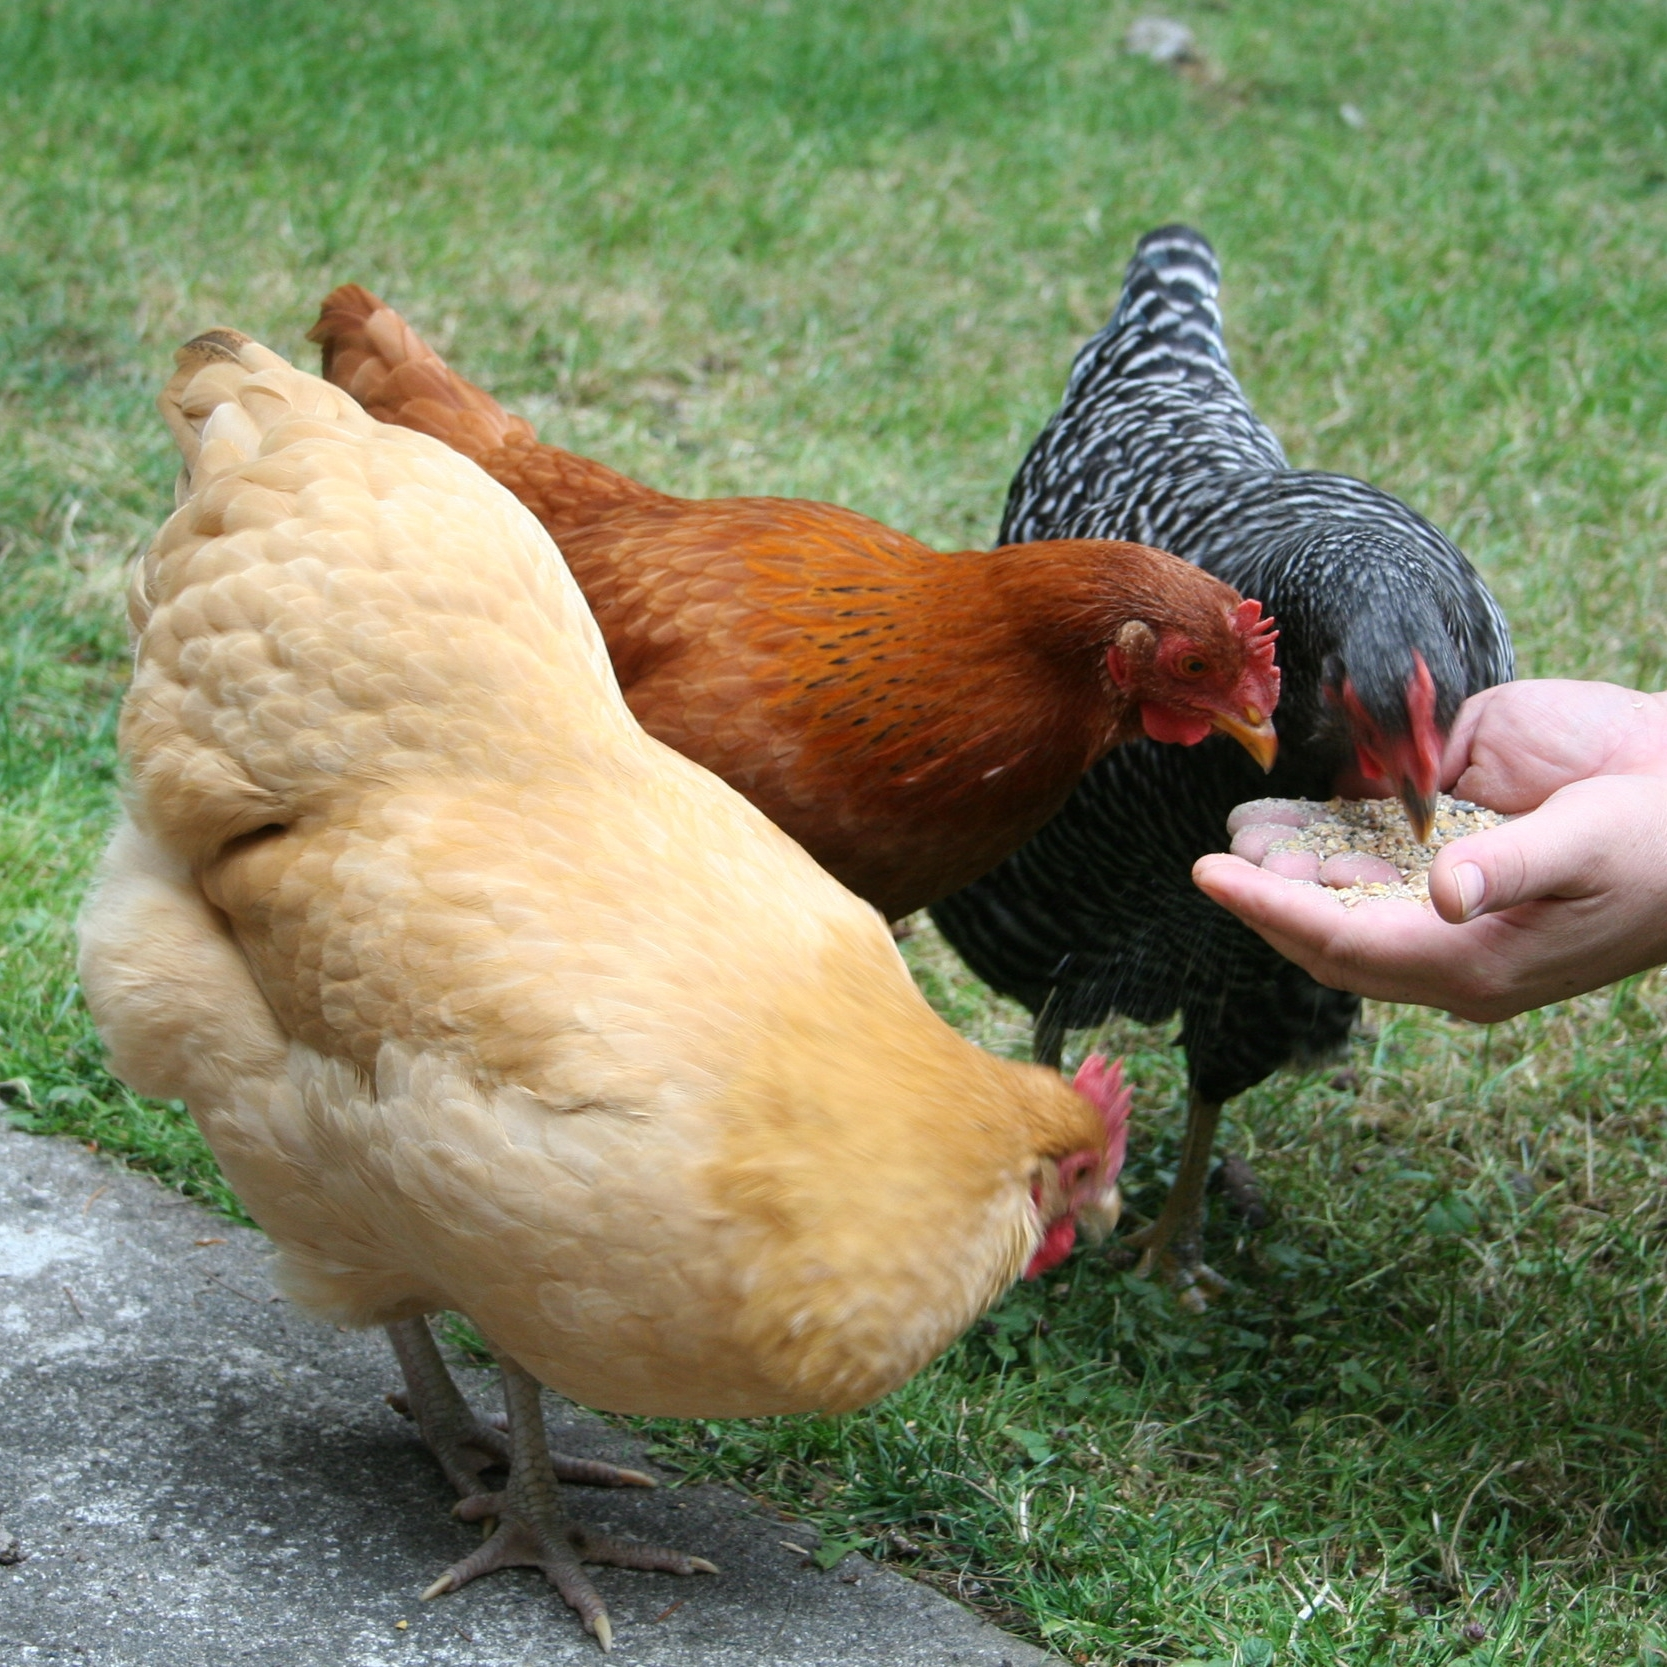 the-chickens-and-ian_4984761042_o.jpg